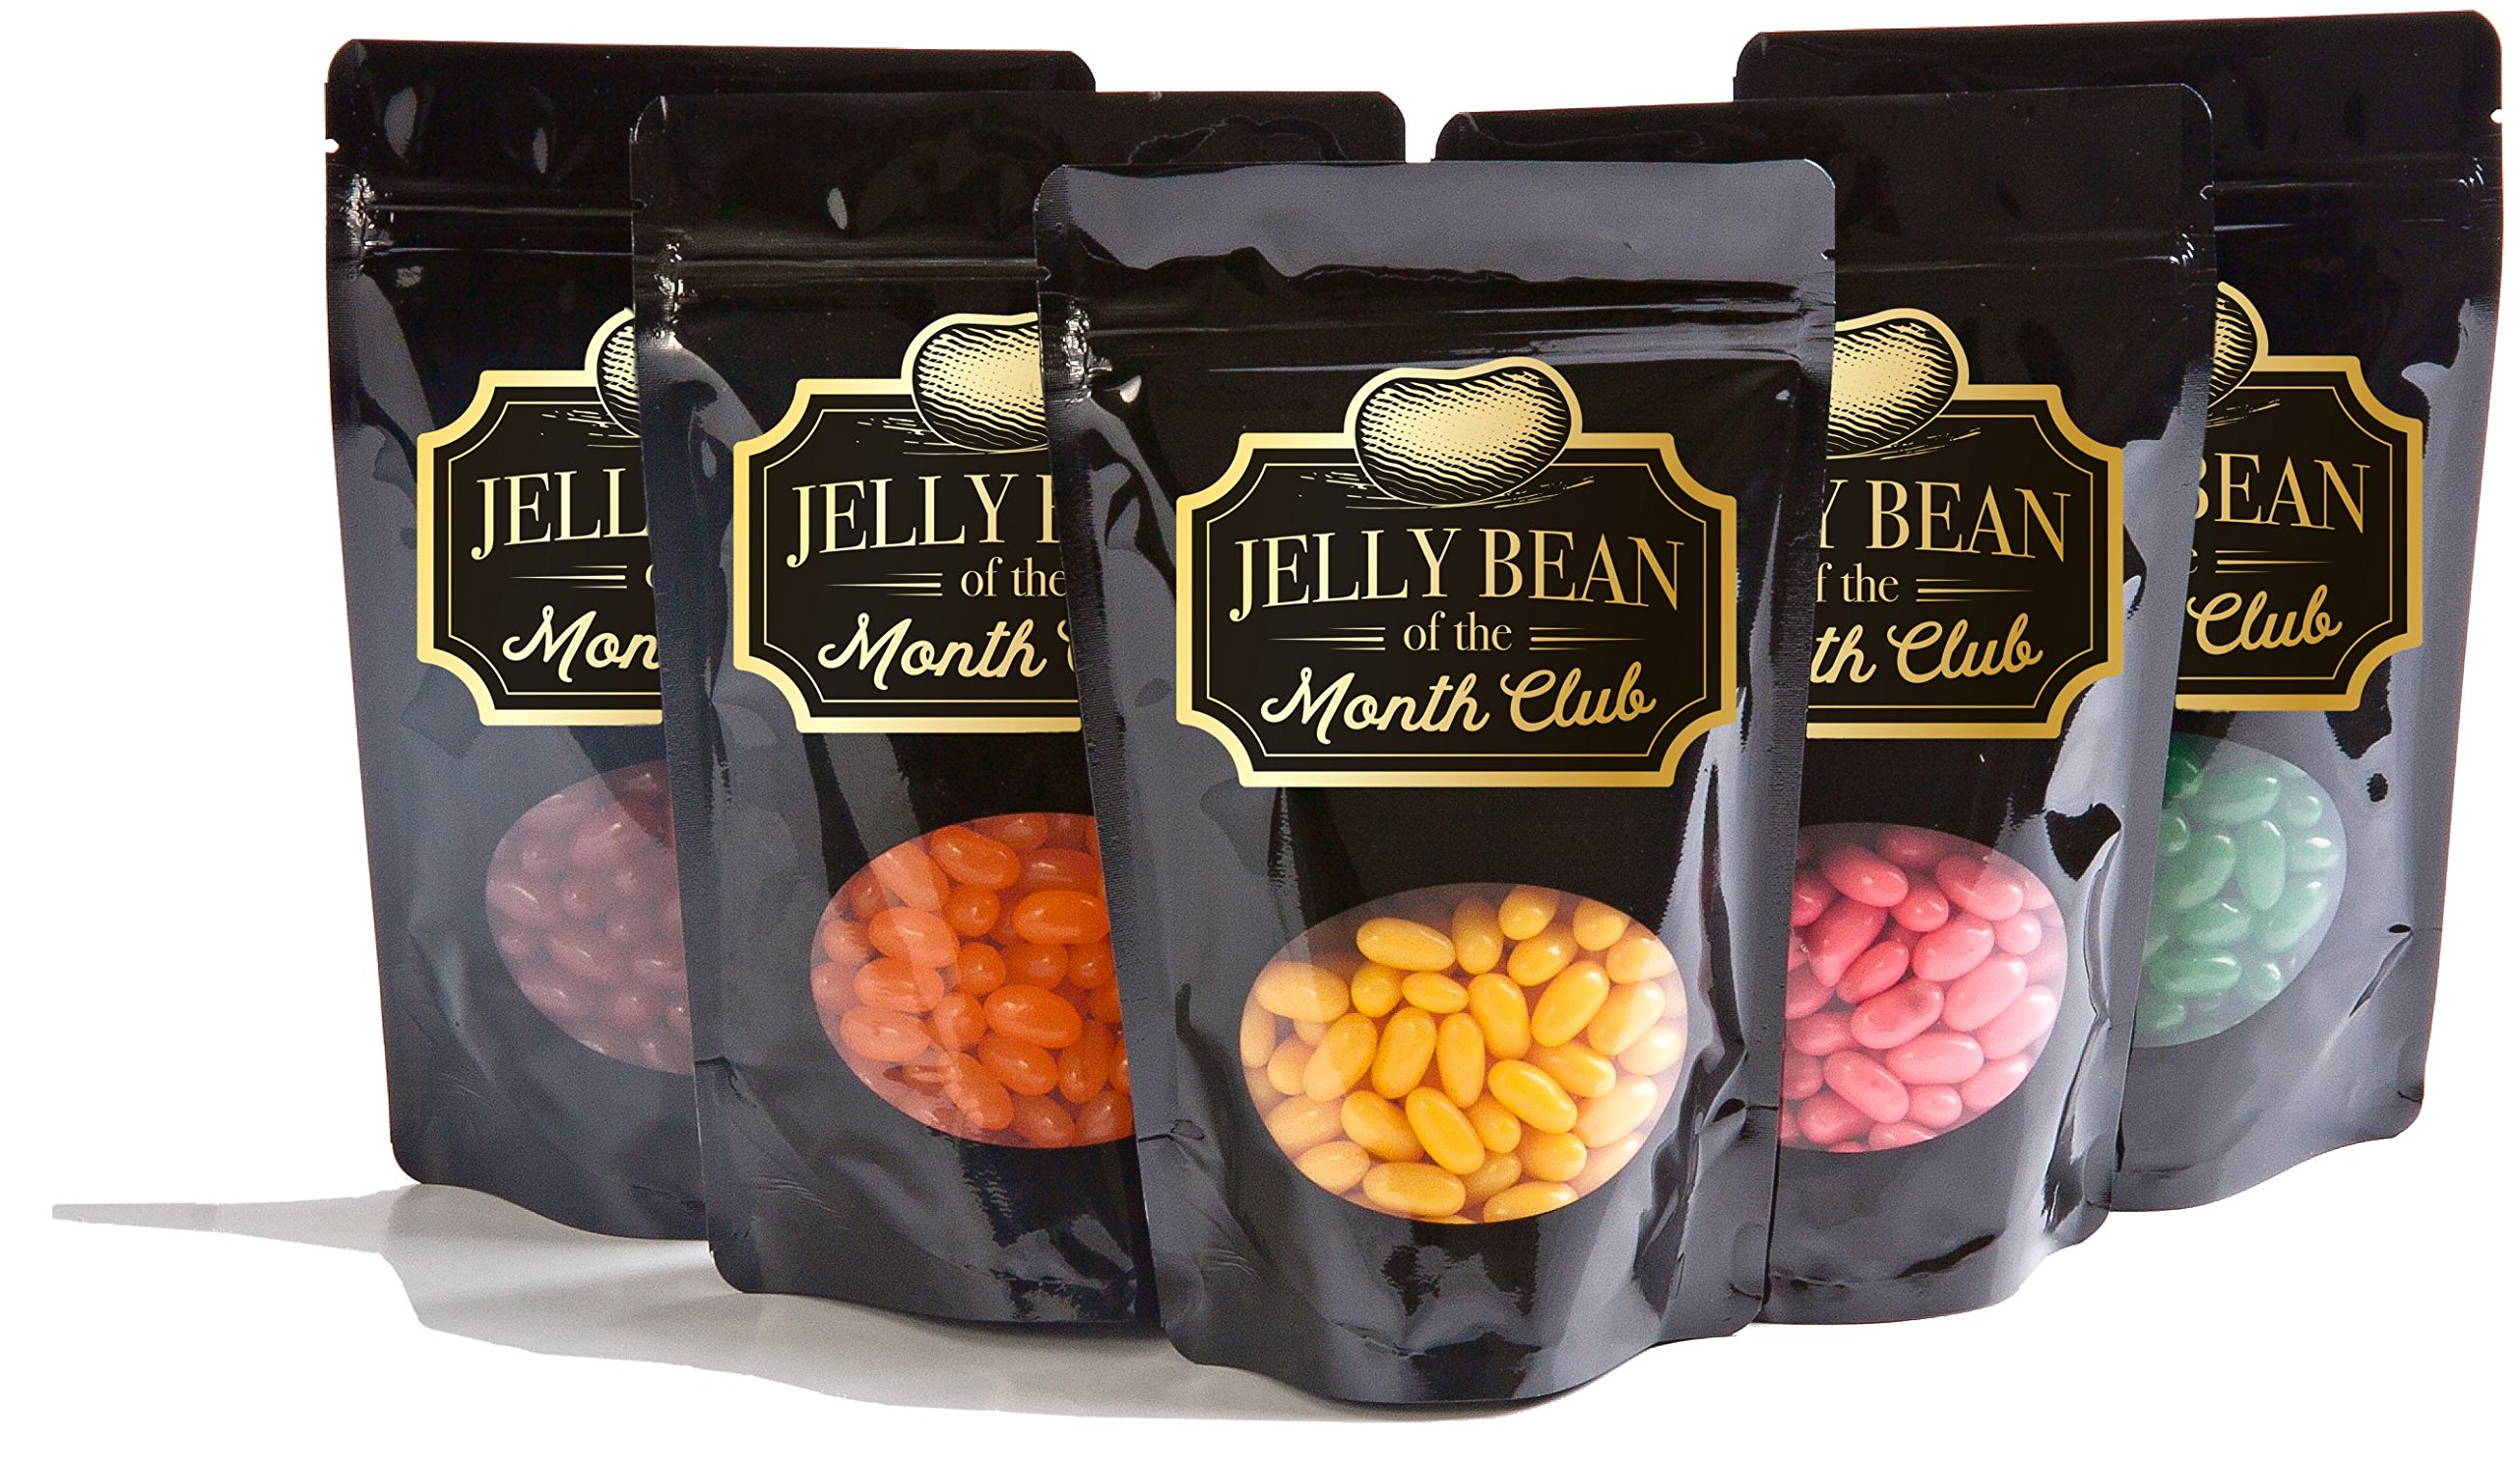 Jelly Bean Of The Month Club Featuring David Murphy Gourmet Jelly Beans - 3 Month Subscription, 1 Bag Of Jelly Beans Per Month